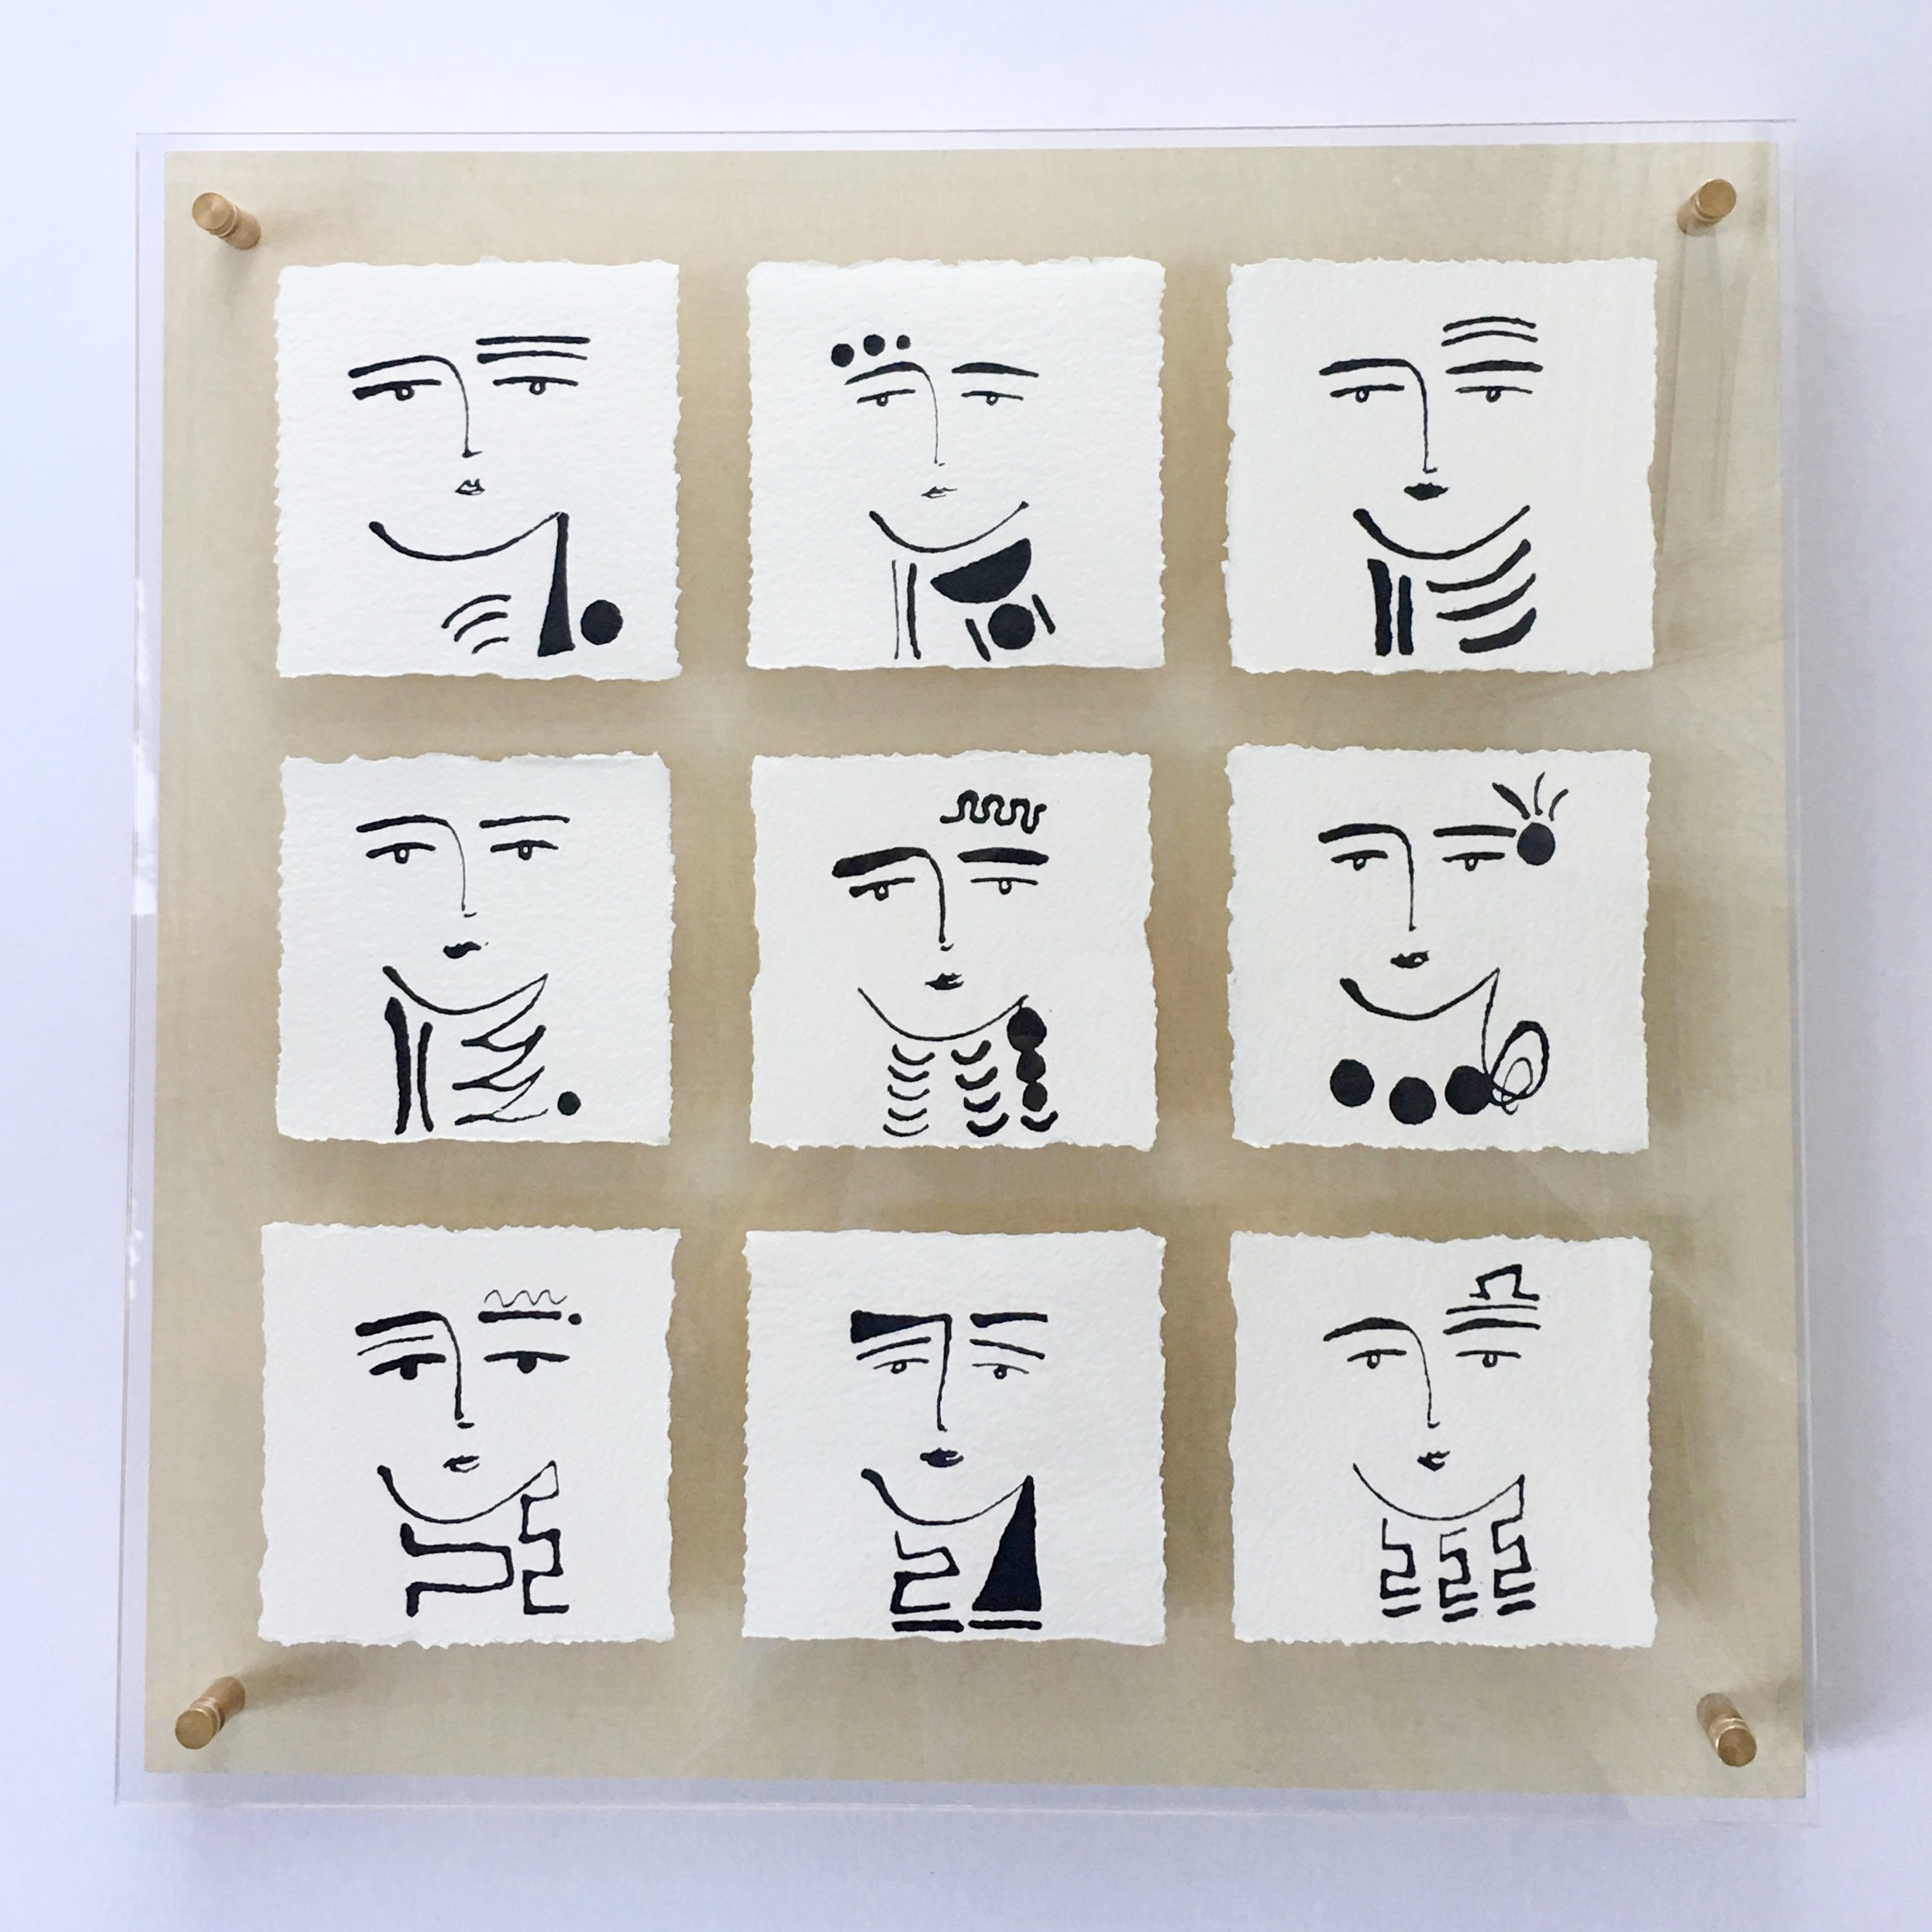 Phases of Faces I 2017 - 20x20 - Sold